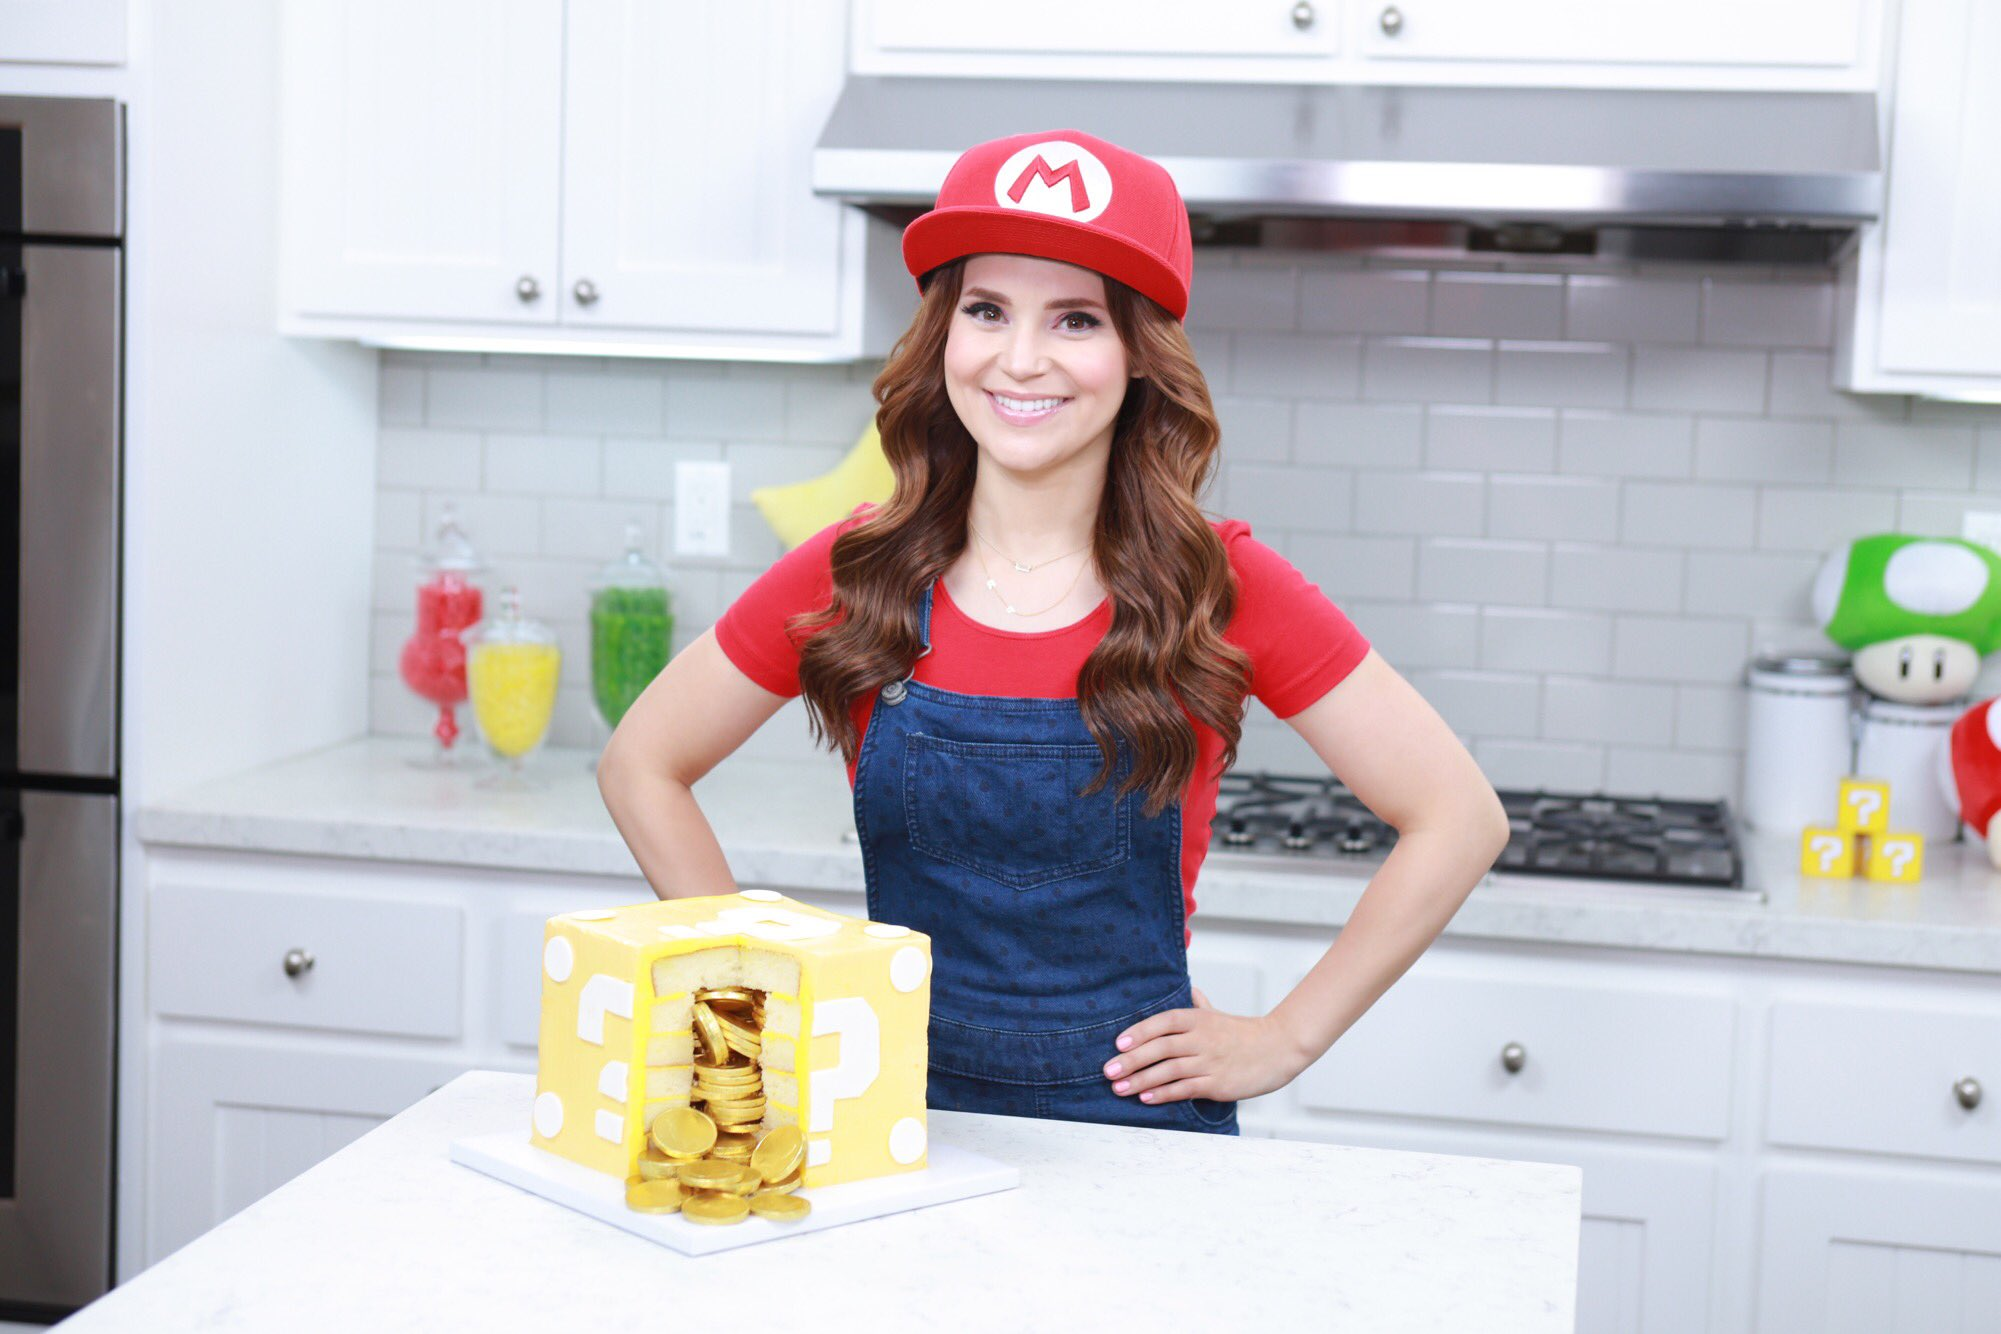 Rosanna Pansino On Twitter Quot New Video Made A Mario